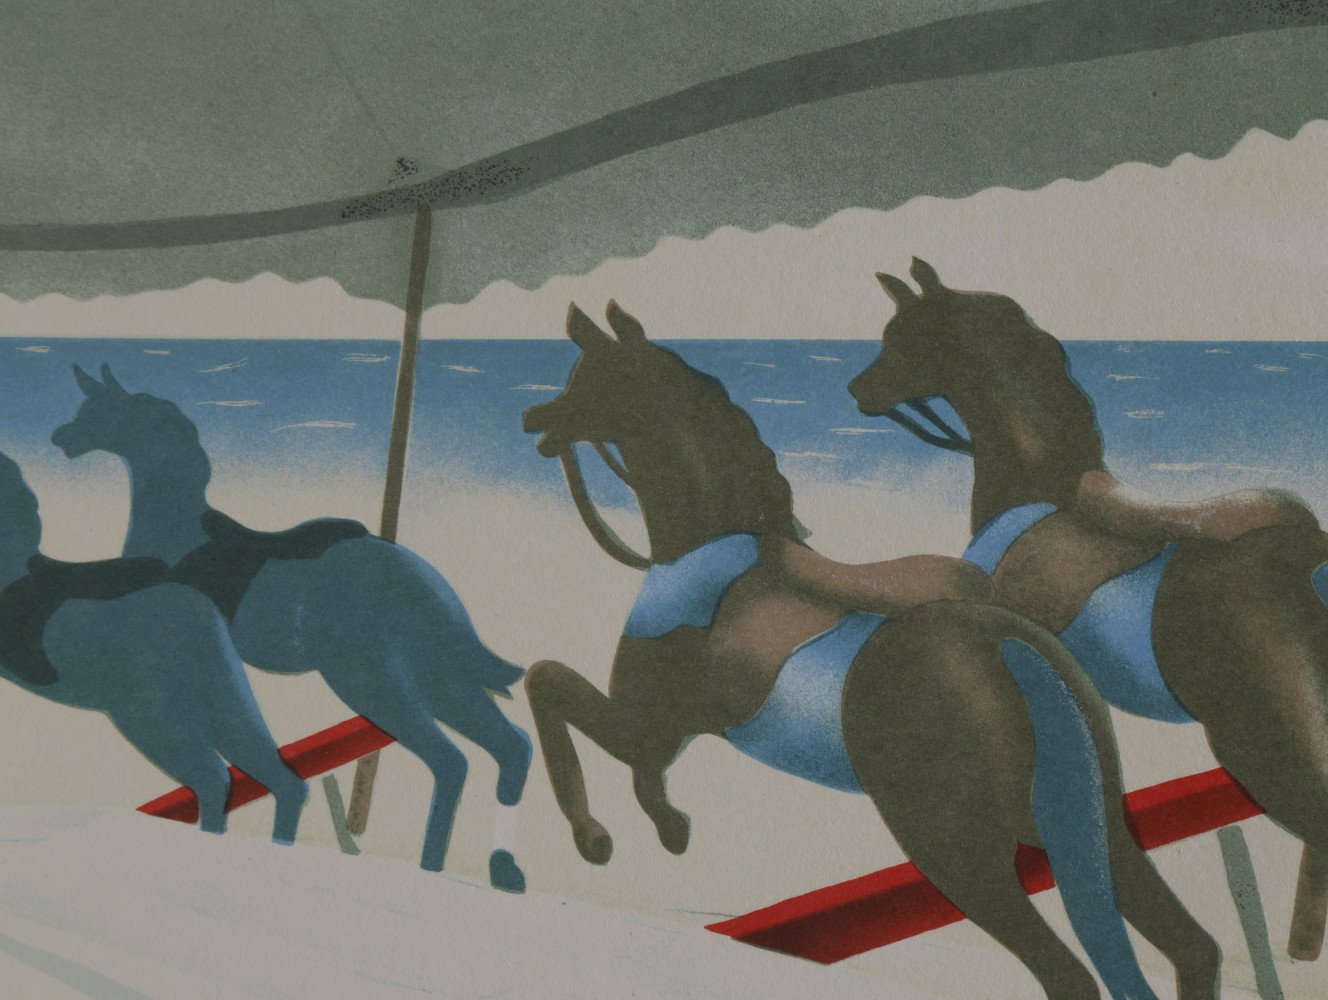 Carousel by the Sea by Clarence Holbrook Carter